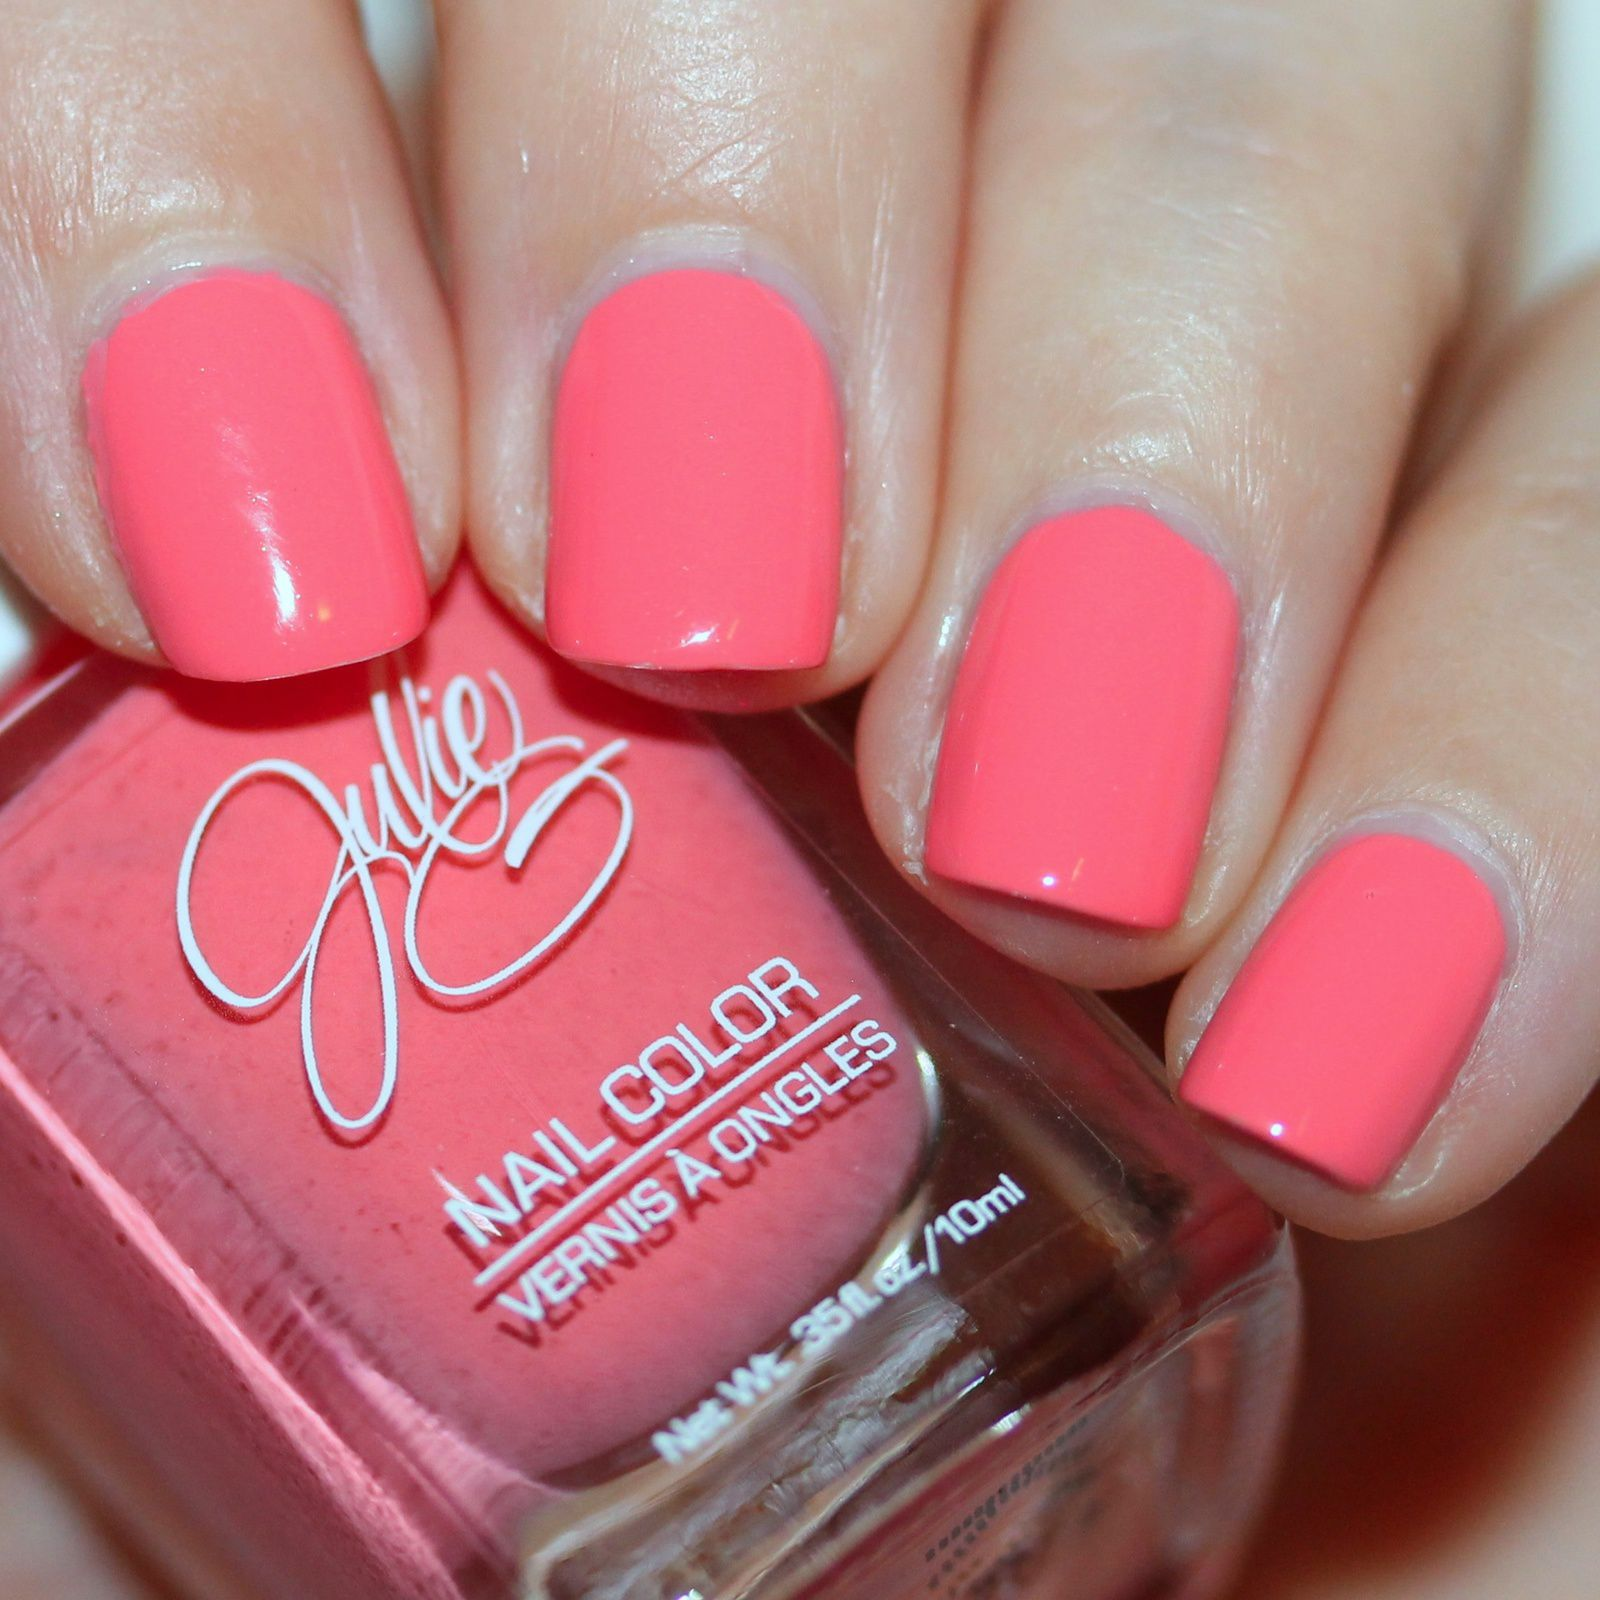 Sally Hansen Complete Care 4-in-1 Extra Moisturizing Nail Treatment / Julie G Anthony / HK Girl Top Coat